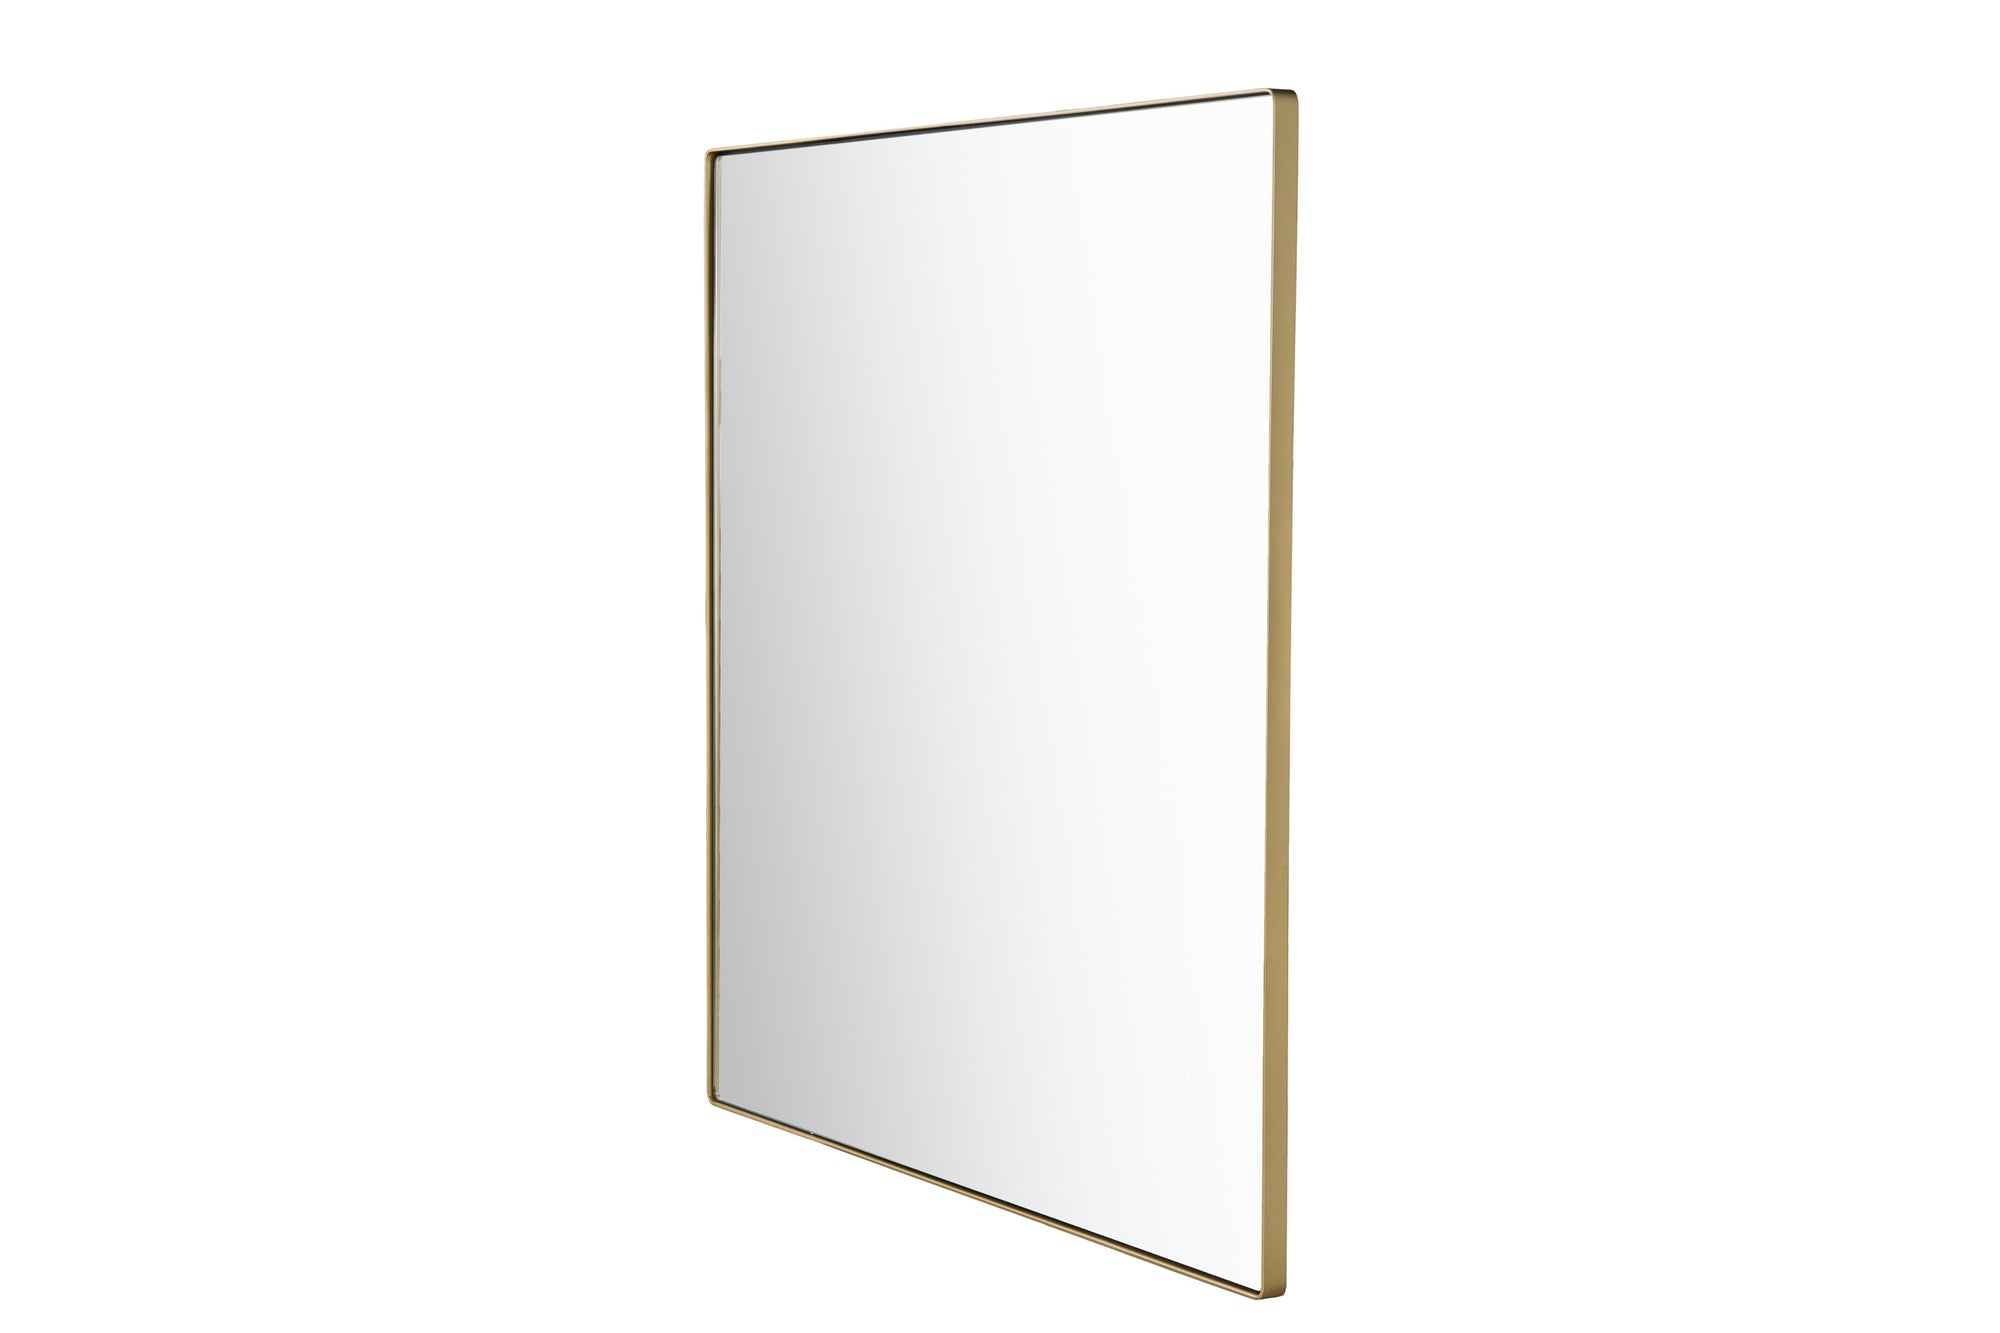 Kye 407A06GO 40x40 Rounded Square Mirror - Gold